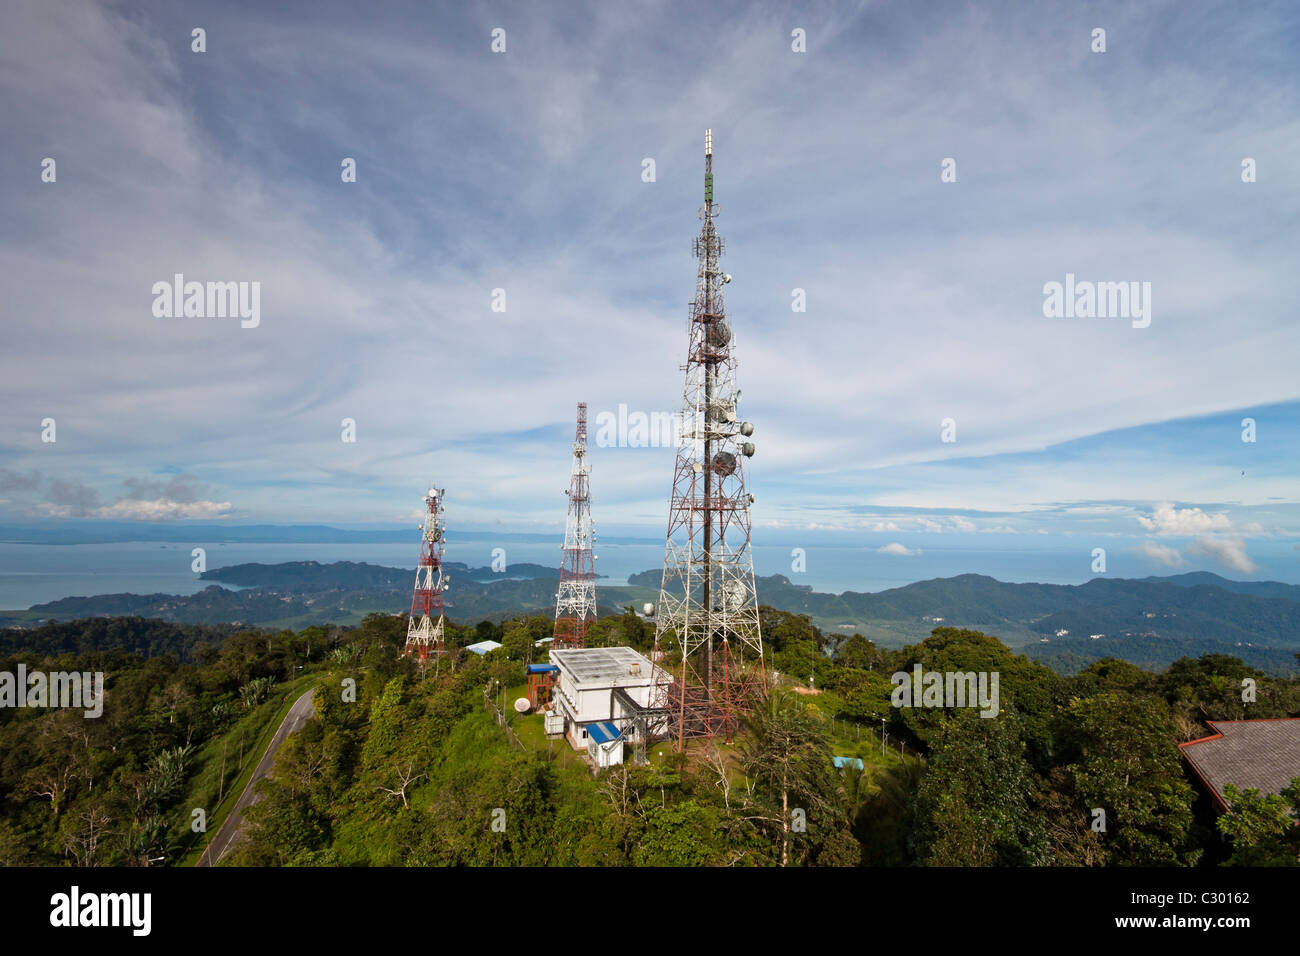 telecommunications towers on the top of the hill, Langkawi, Malaysia - Stock Image